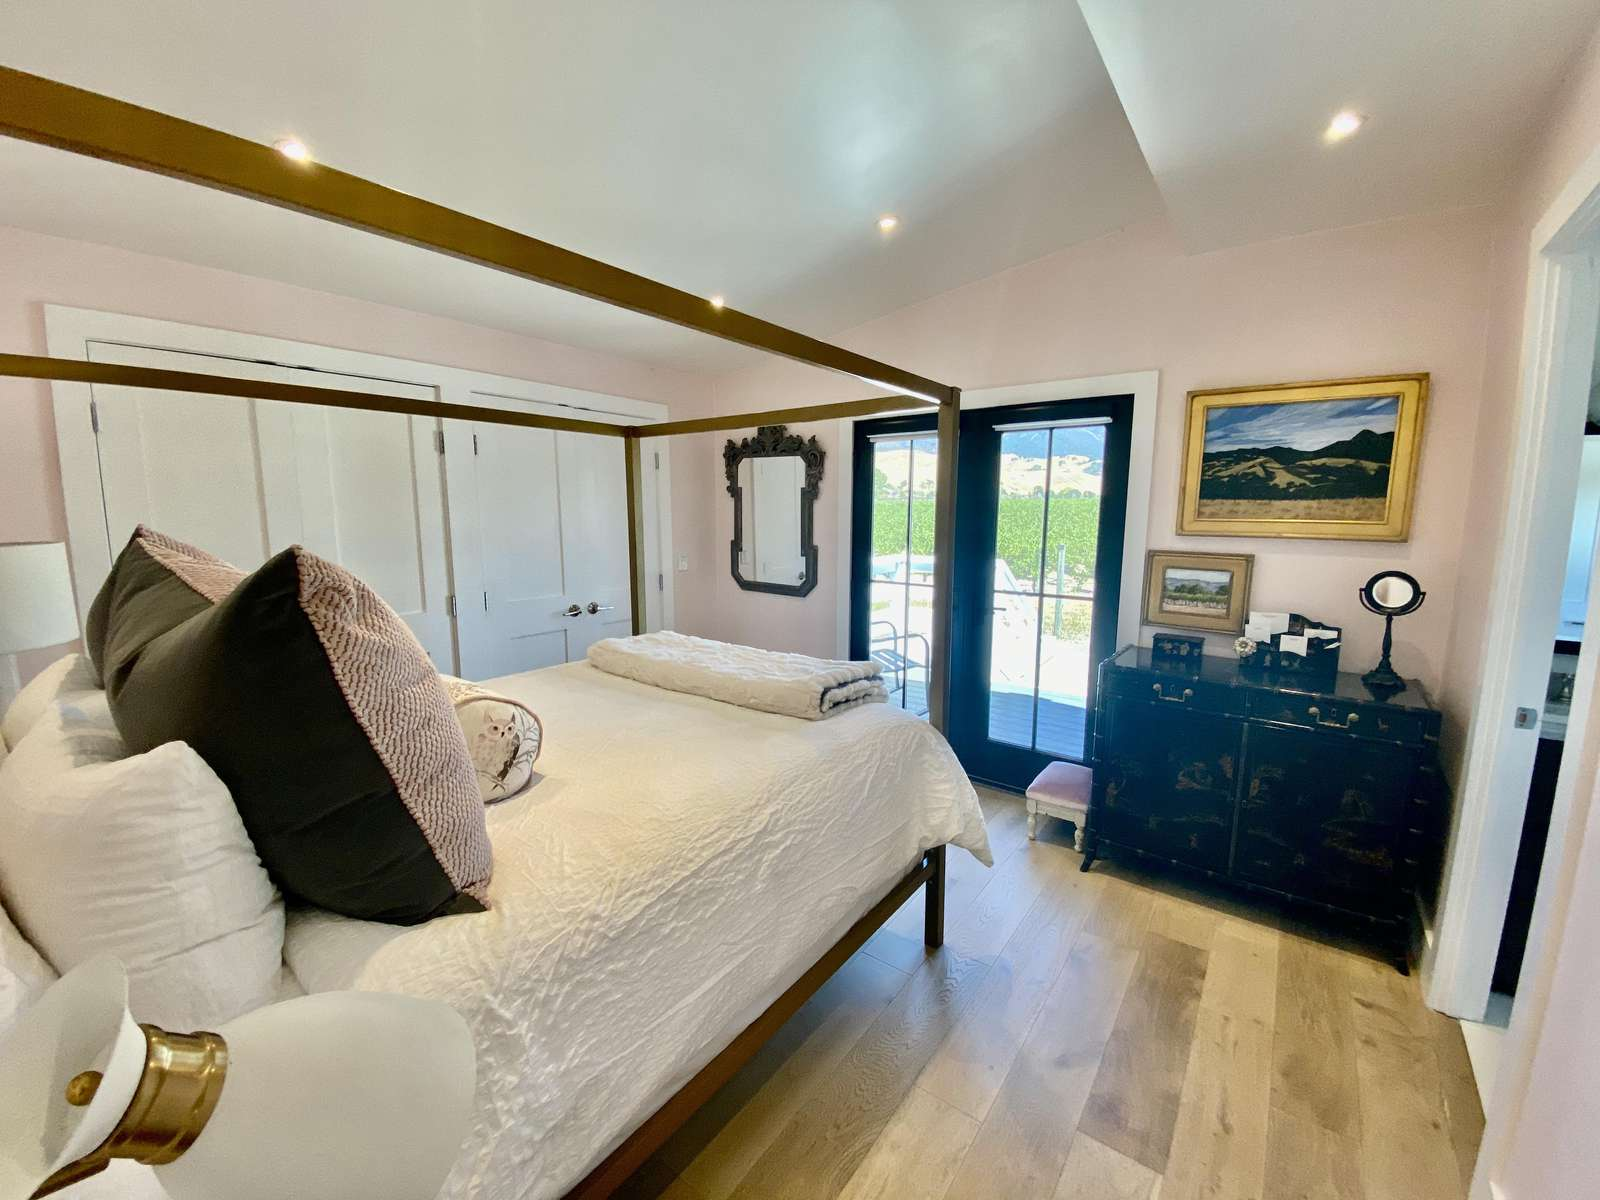 Master bedroom with view to courtyard